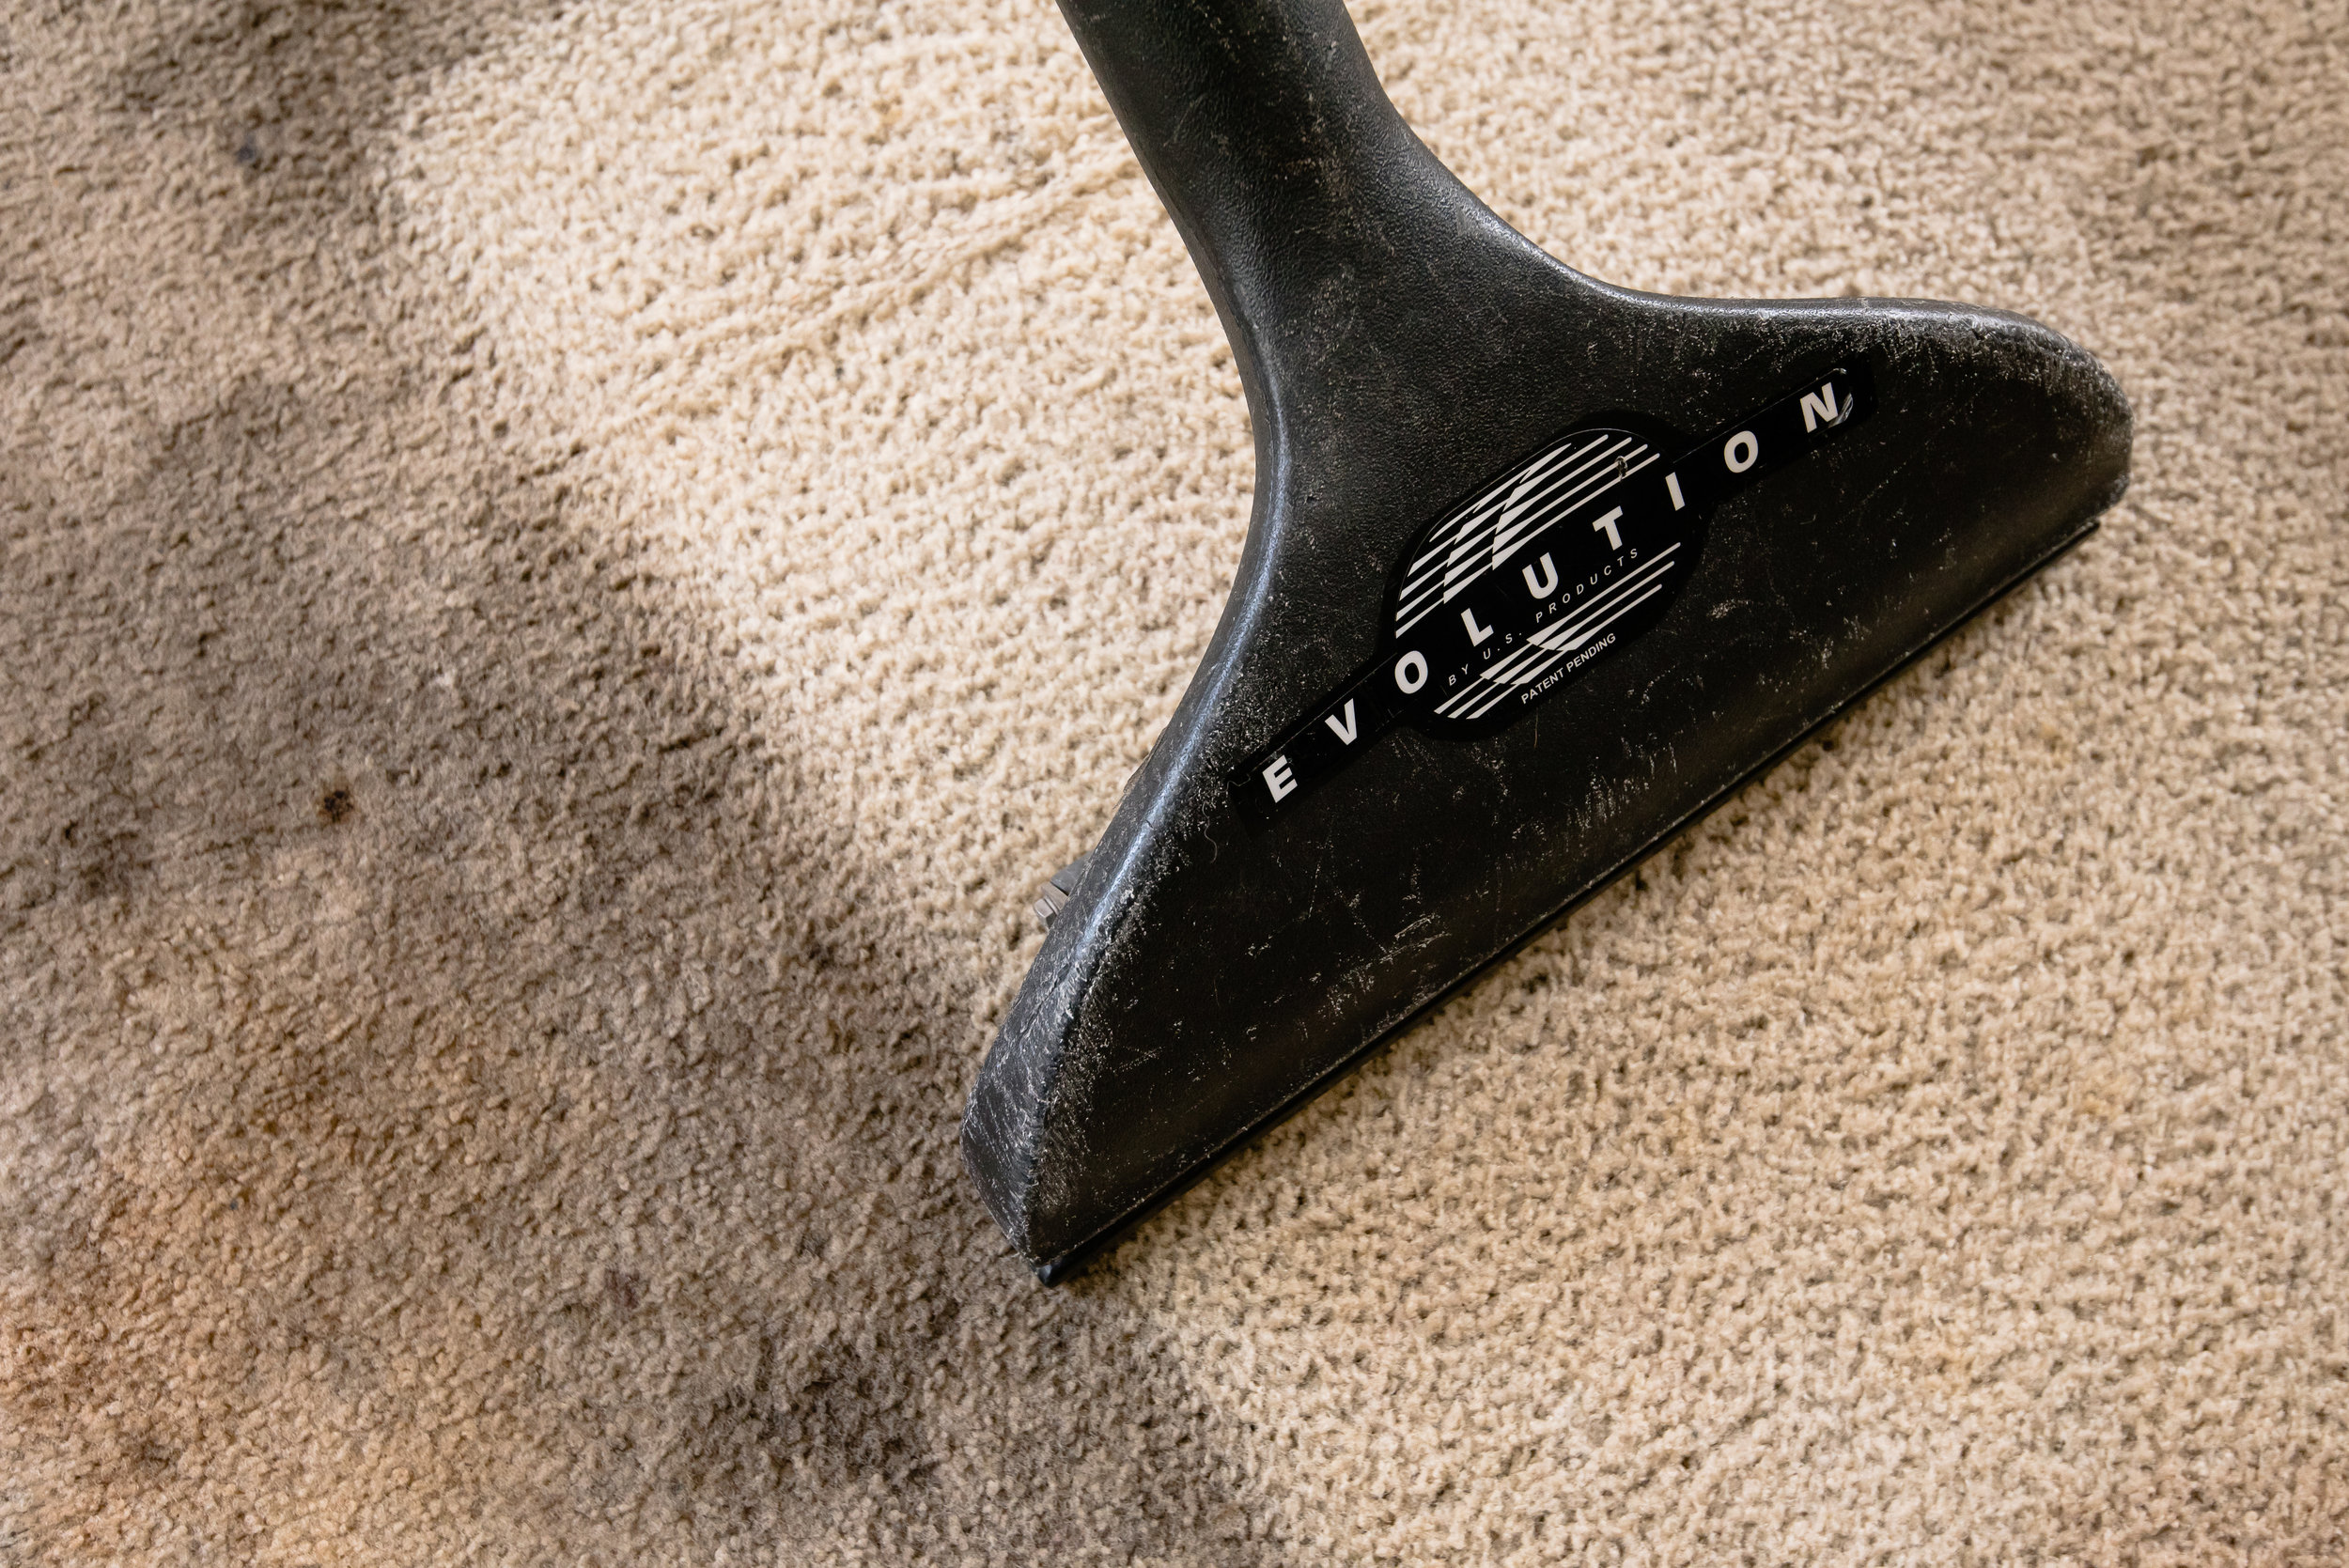 Carpet cleaning highly rated Shoreline